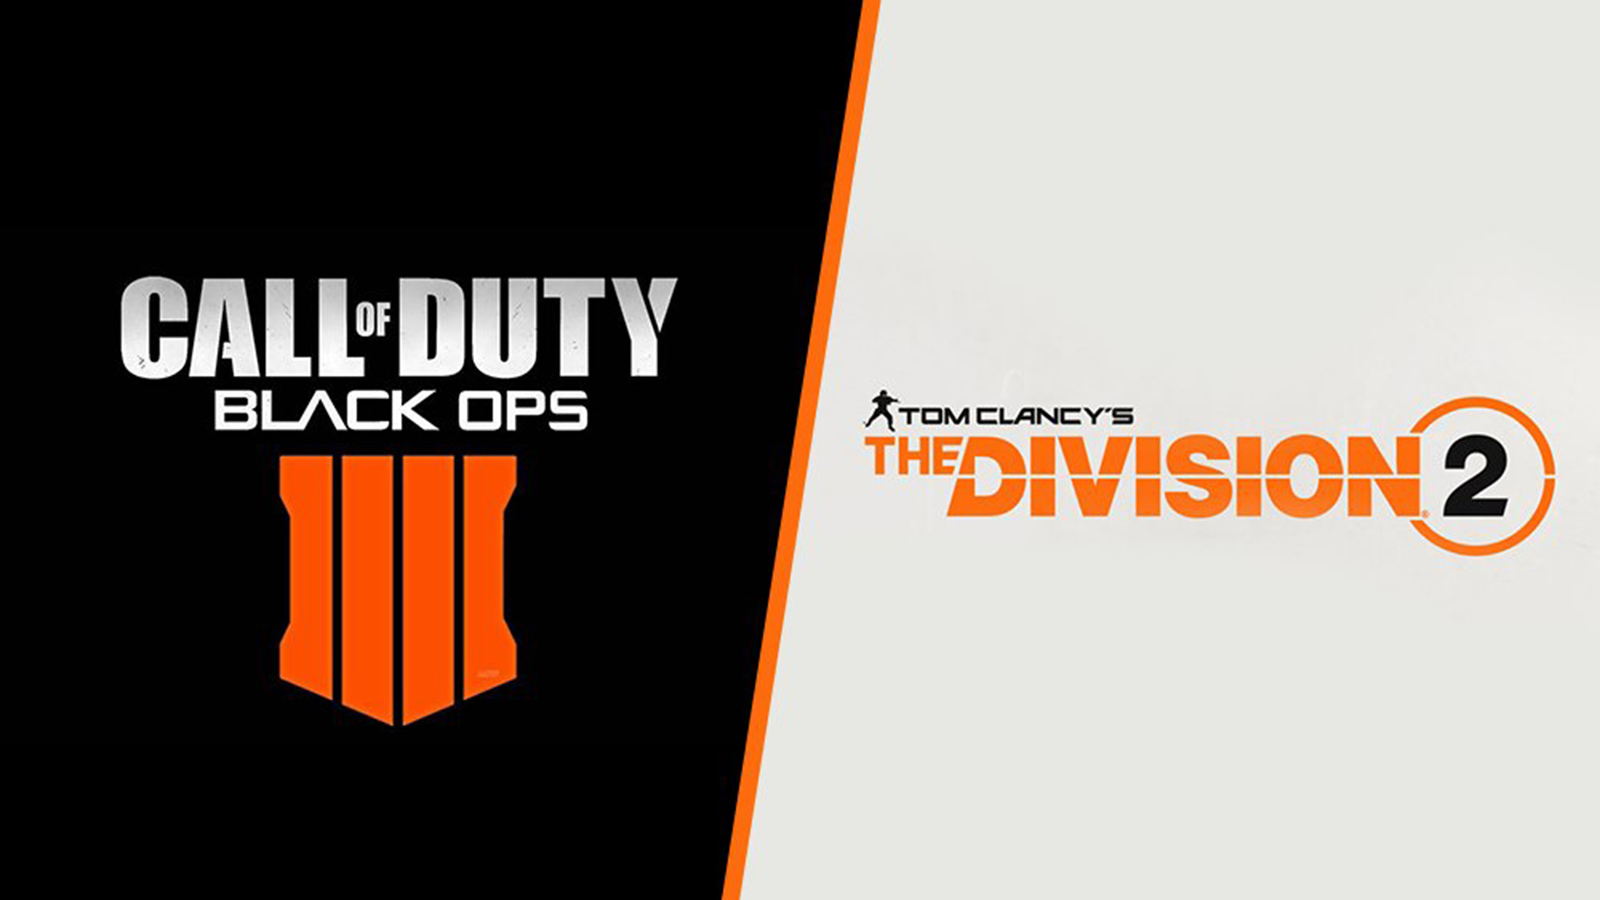 Call of Duty Black Ops 4, The Division 2